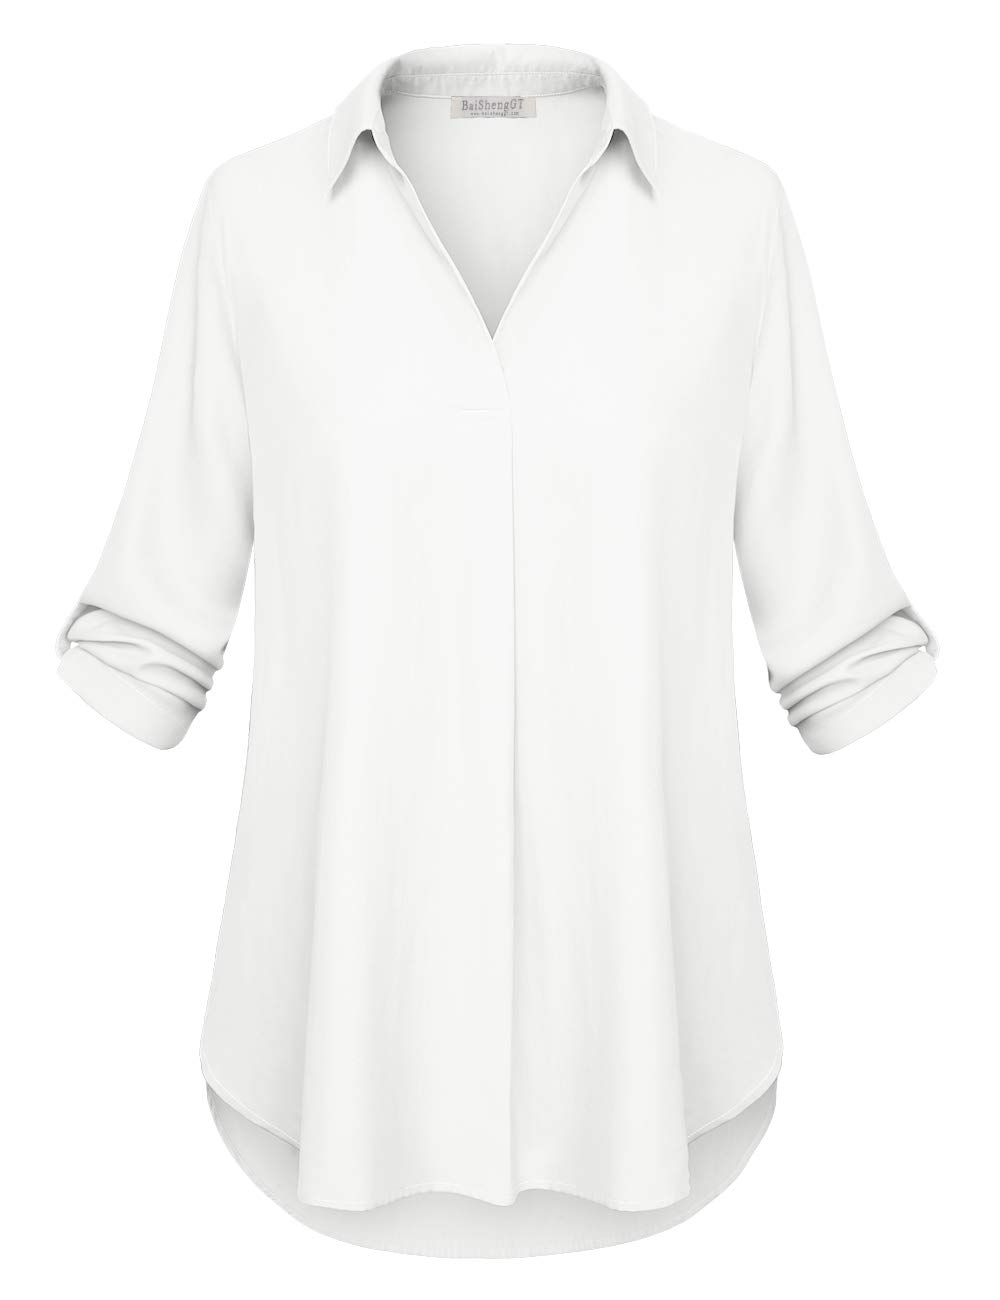 BaiShengGT Women's Solid Tunic Shirts Half Roll Sleeve Notch Neck Tunic Top XX Large White